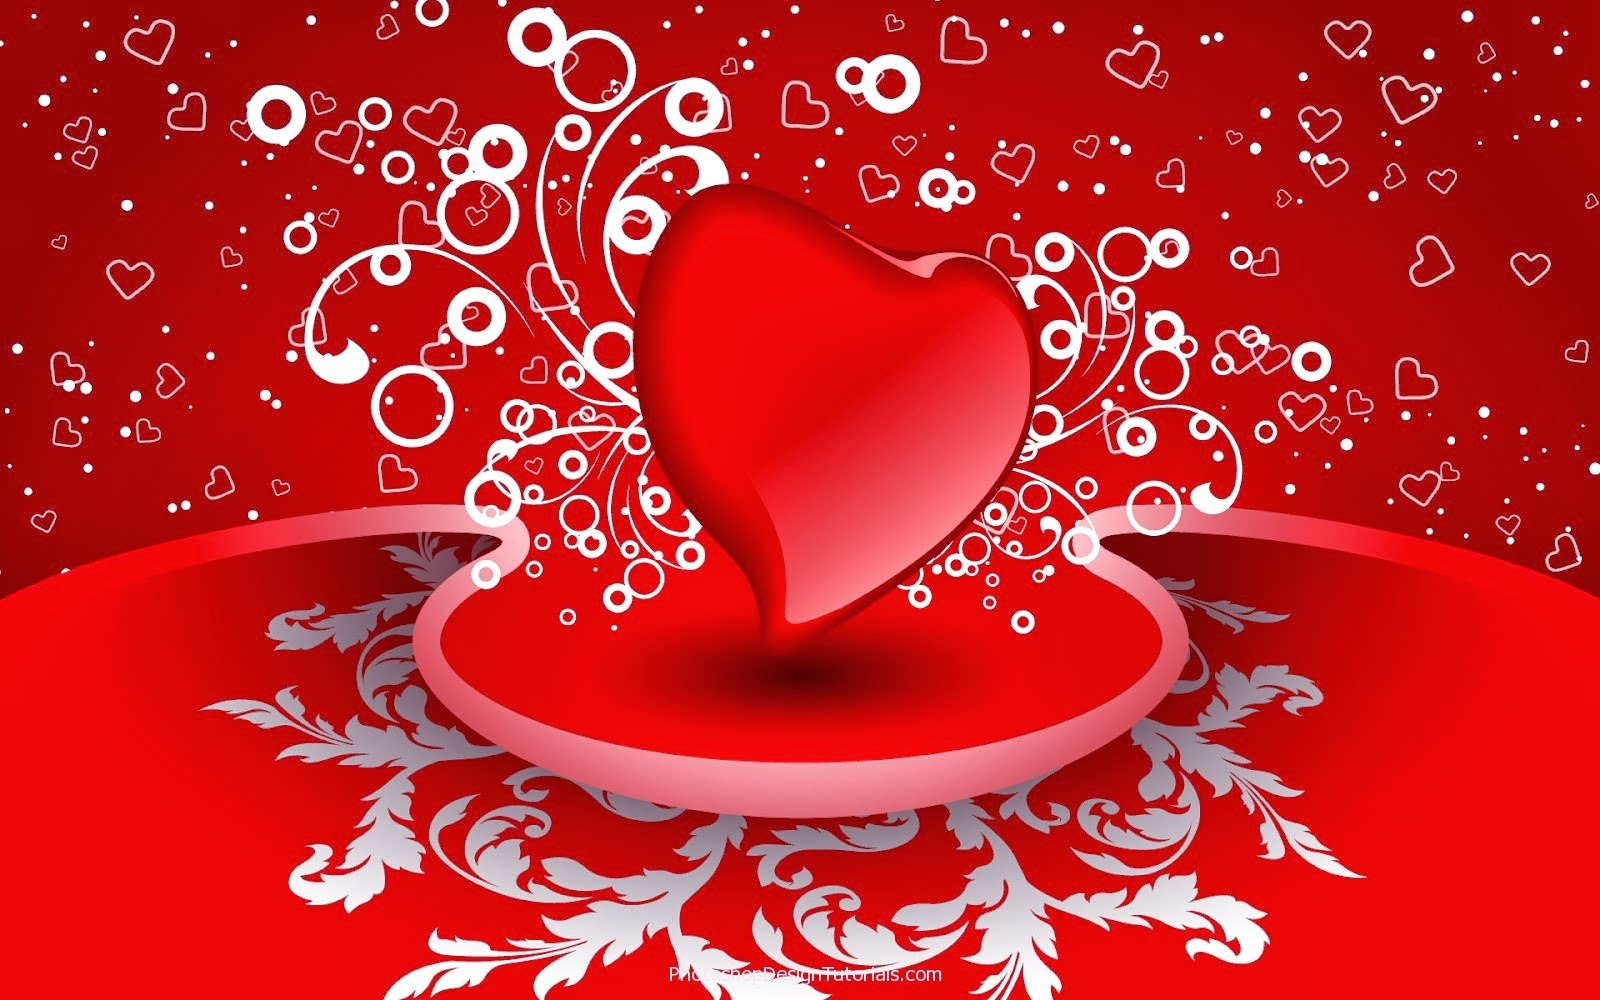 Valentines Day 2014 Free Hd Desktop Wallpapers